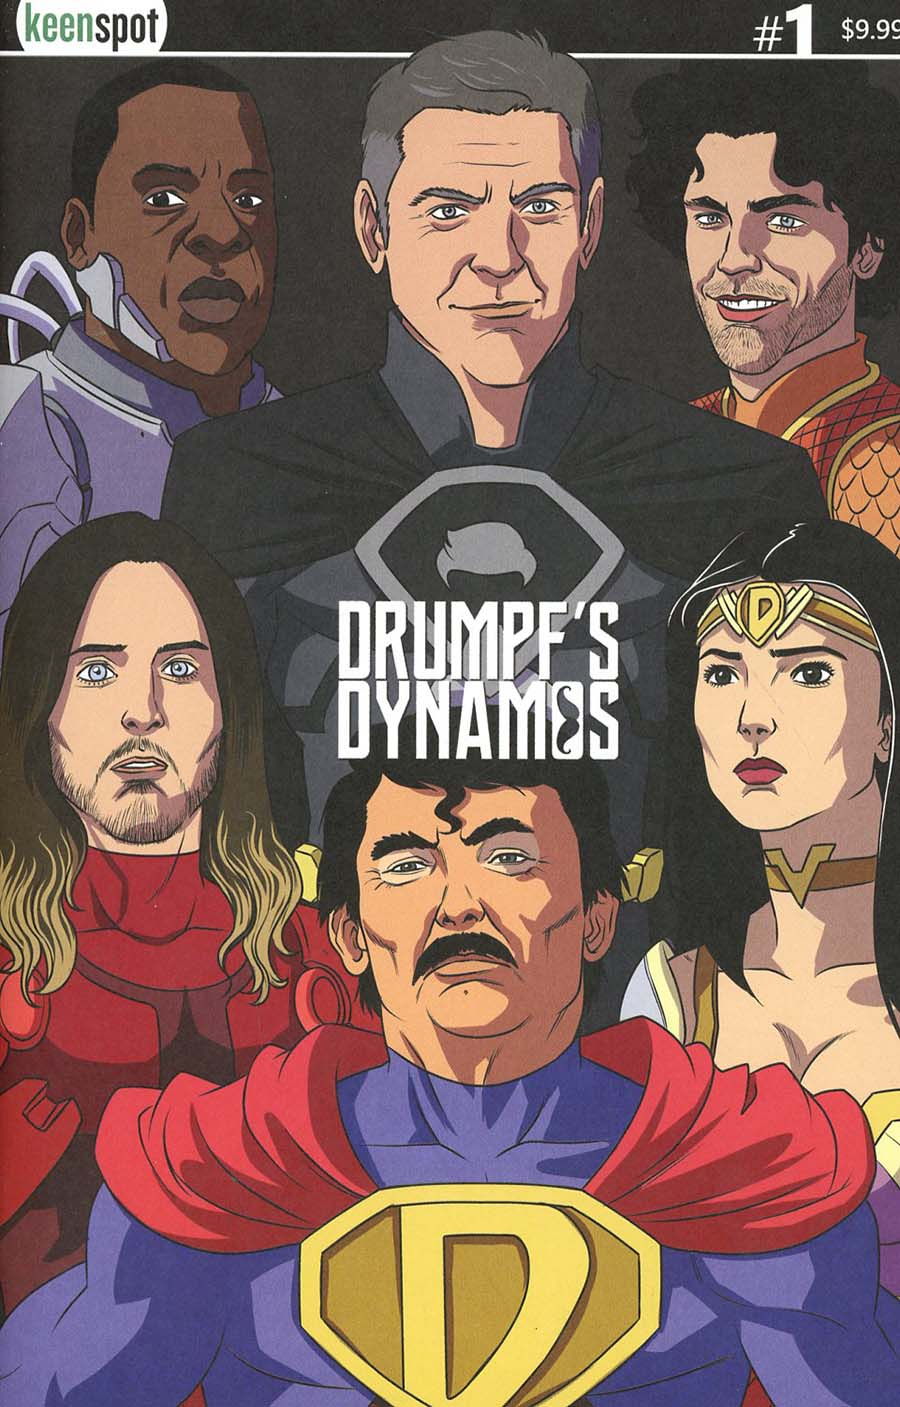 Trumps Titans vs The Mandela Effect #1 Cover C Variant Drumpfs Dynamos Cover